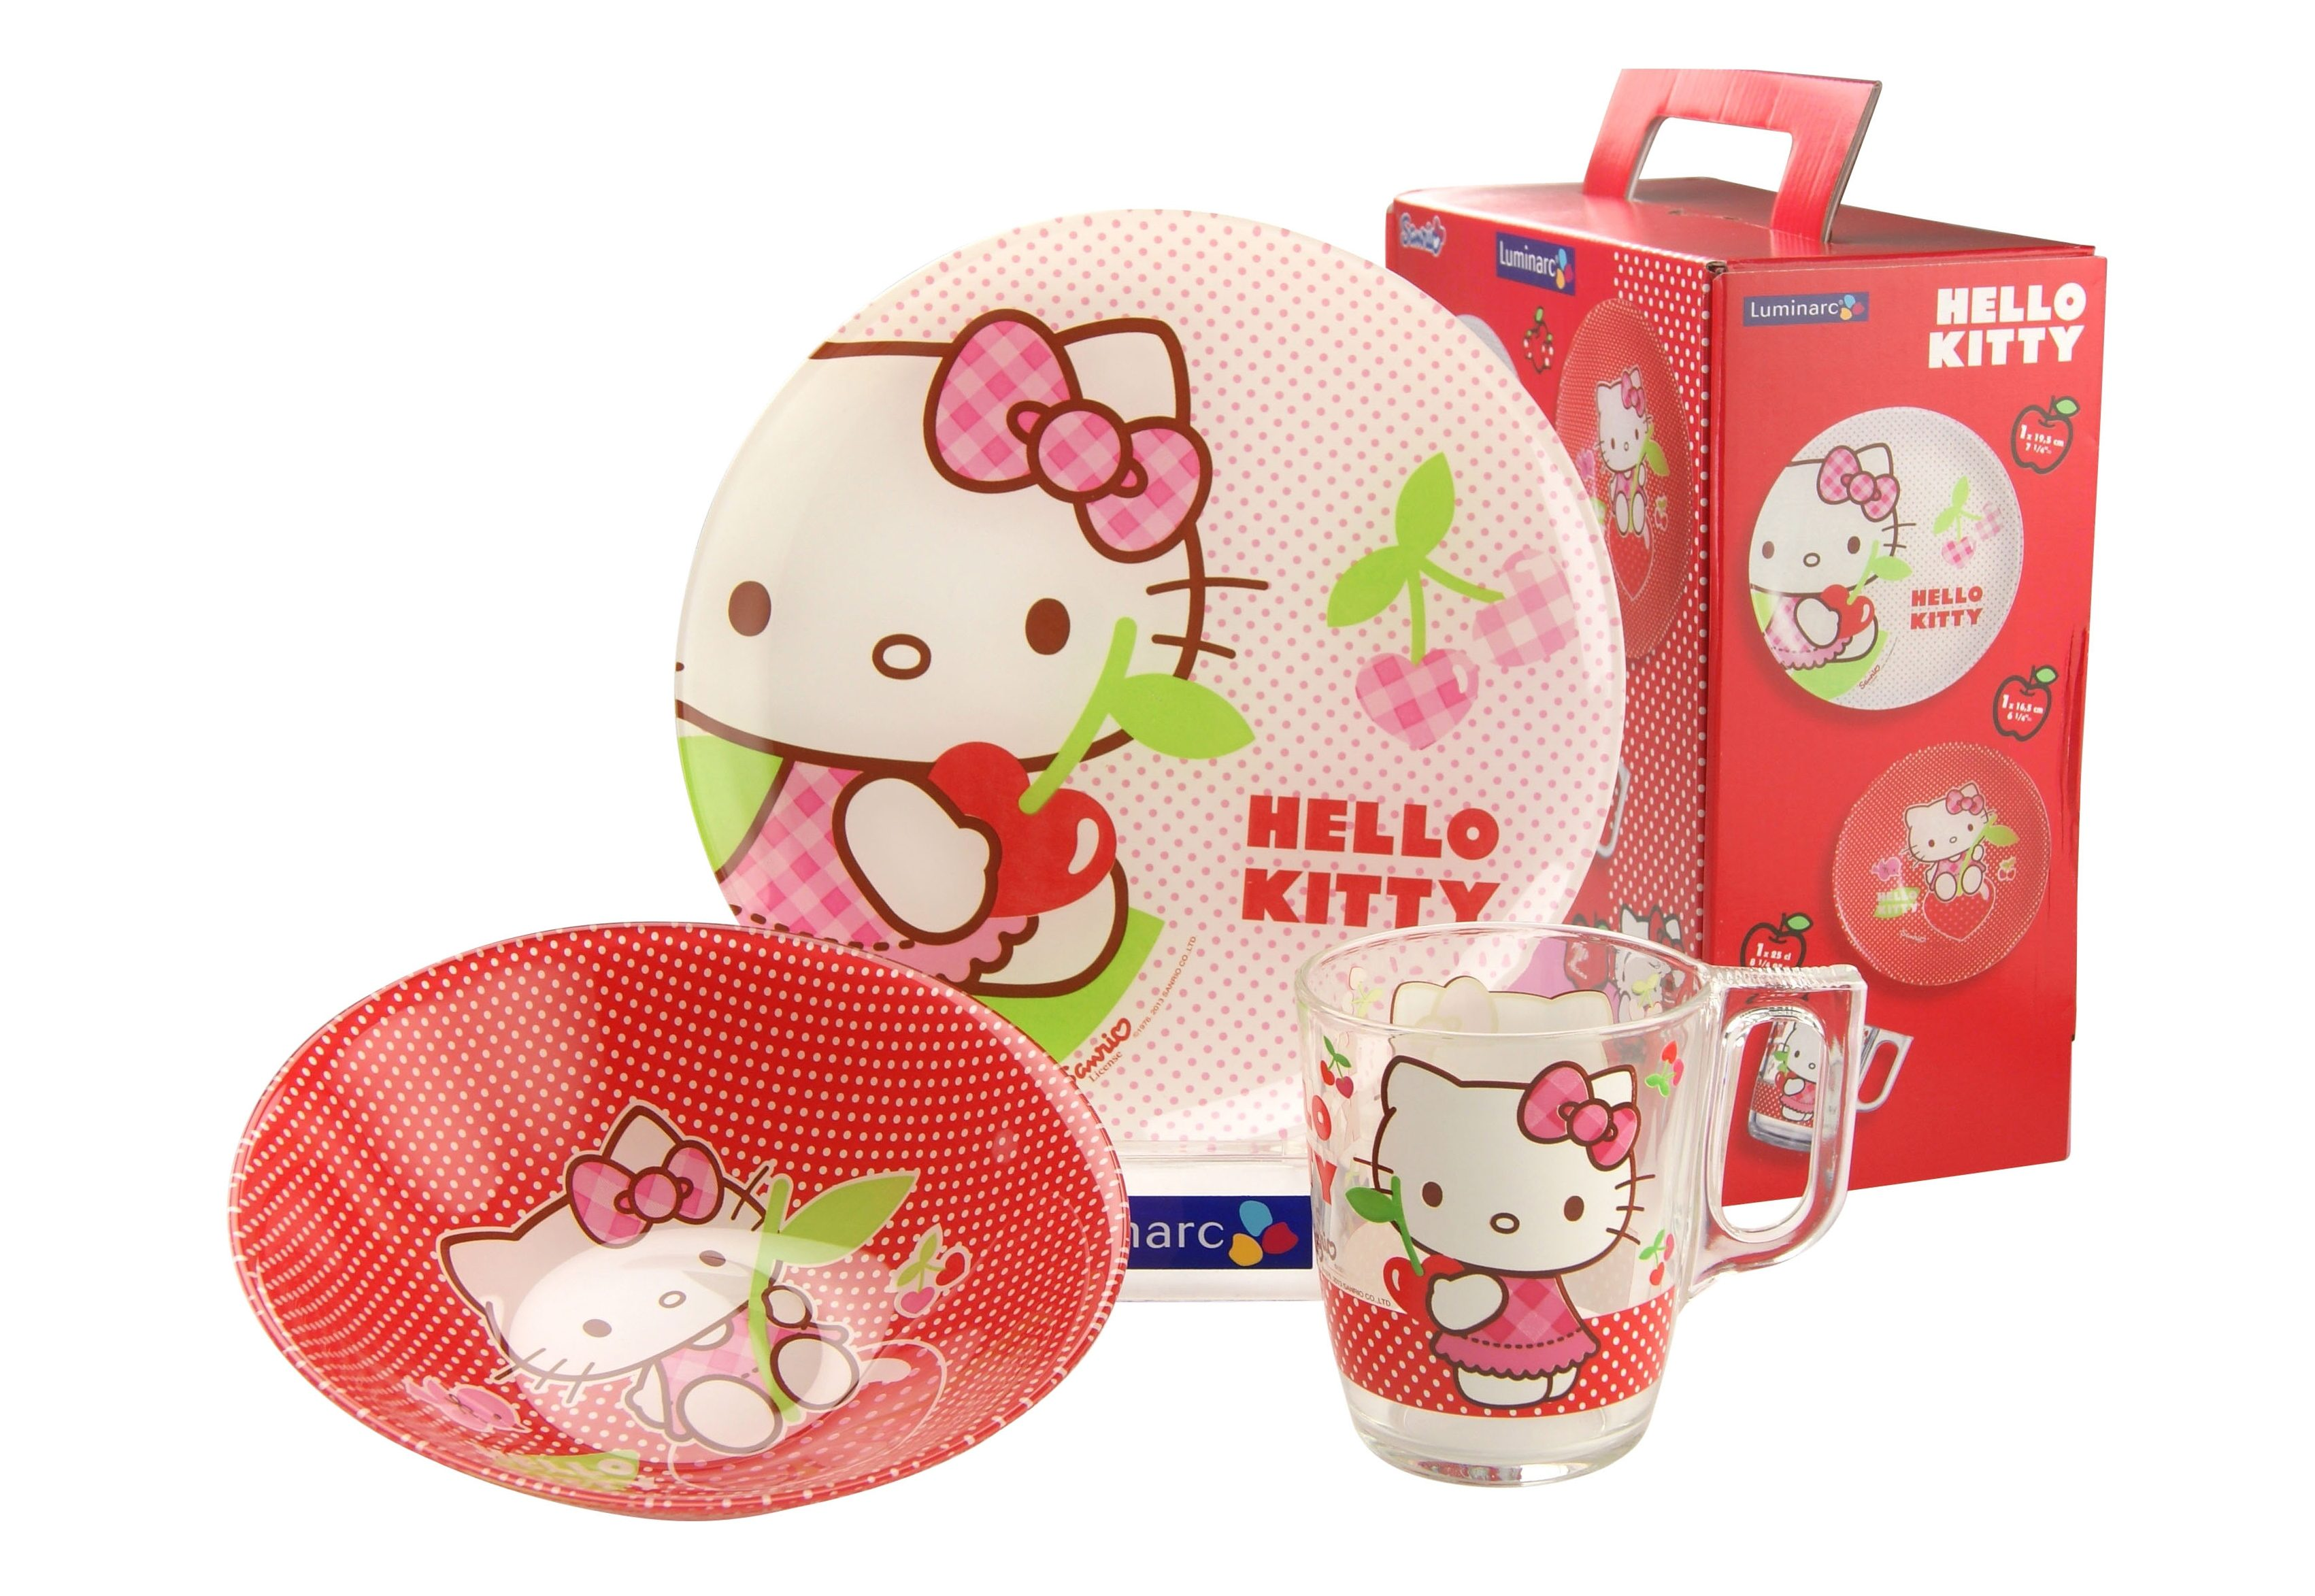 Kinderservice, »Hello Kitty«, Luminarc (3tlg.)